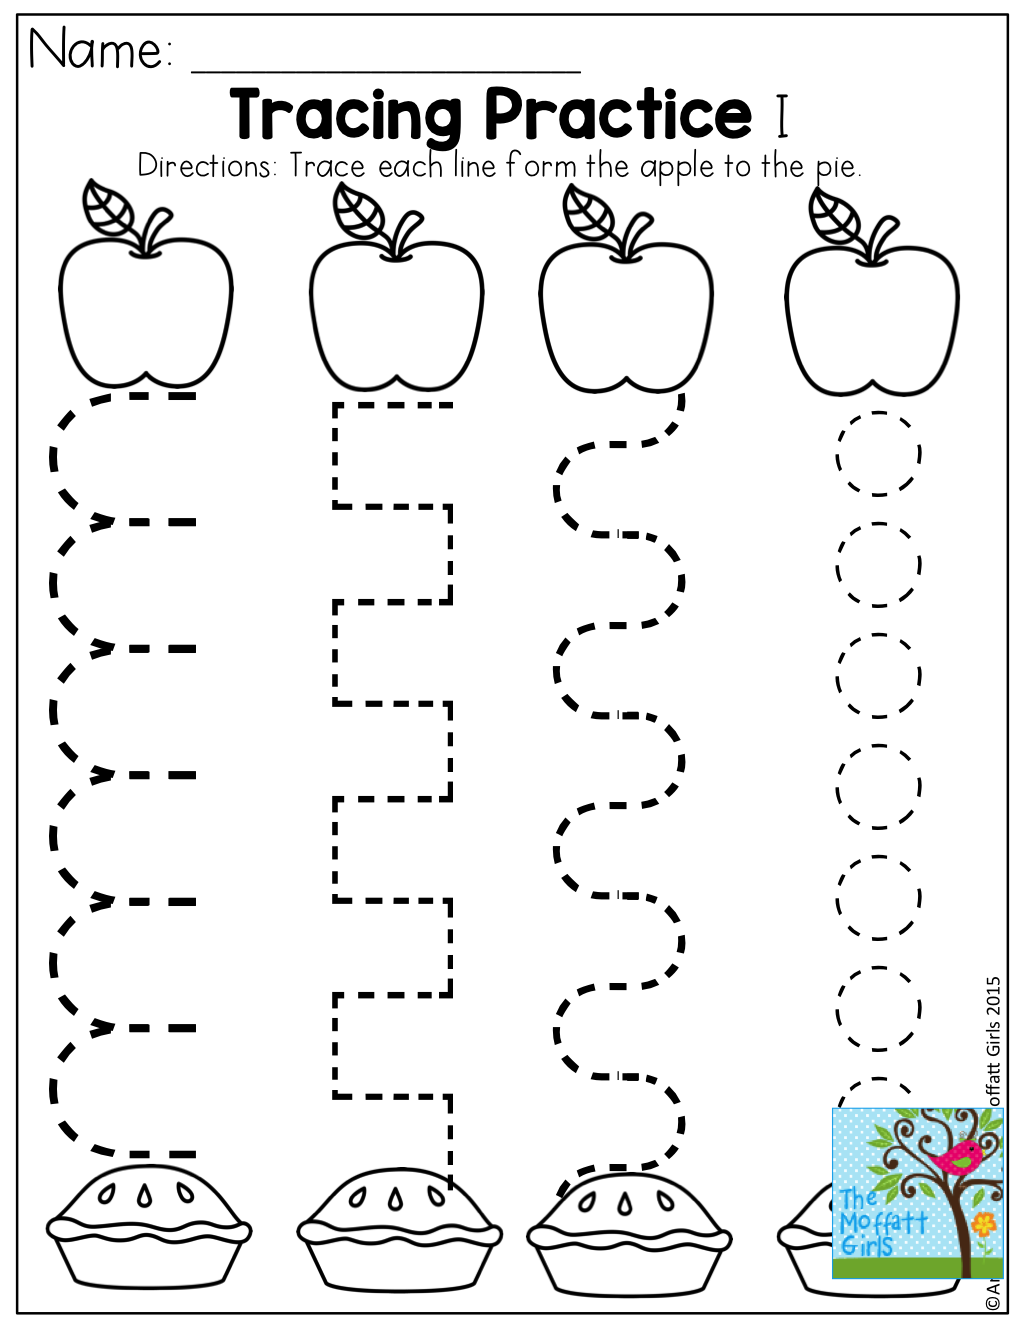 worksheet Kindergarten Back To School Worksheets tracing practice and tons of other fun pages for back to school school